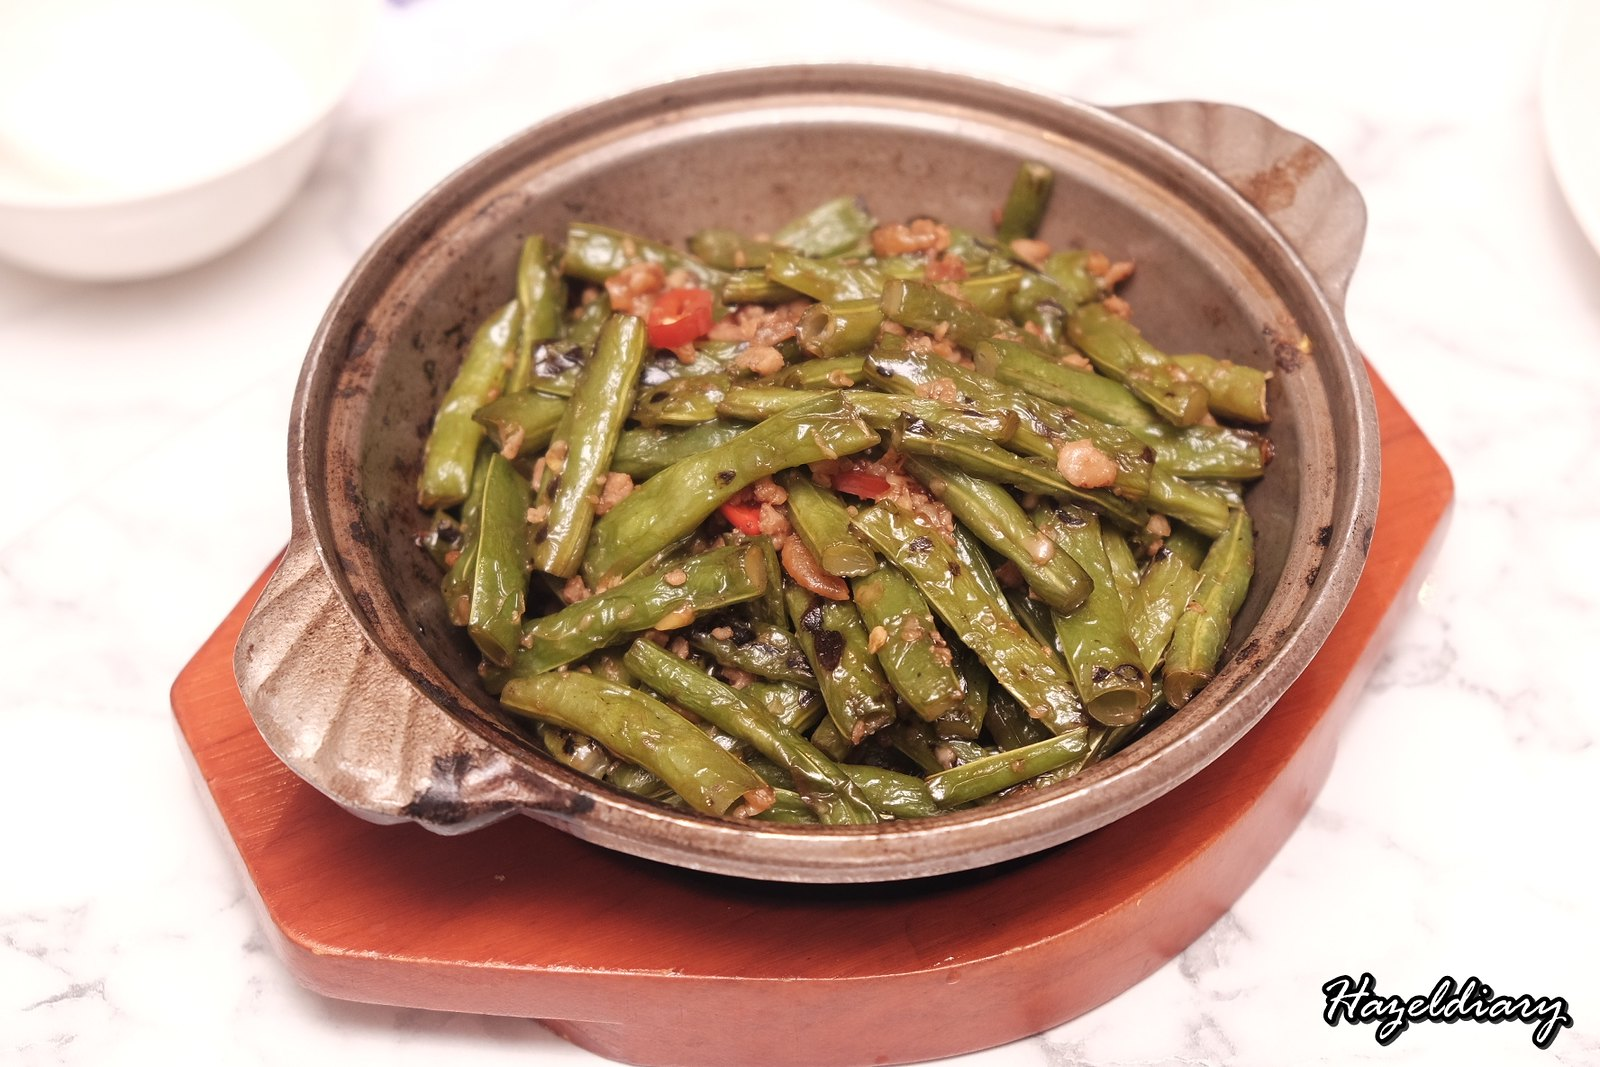 Crystal Jade Kitchen Holland Village-Sauteed French Bean with Tai O Shrimp Paste and Minced Pork